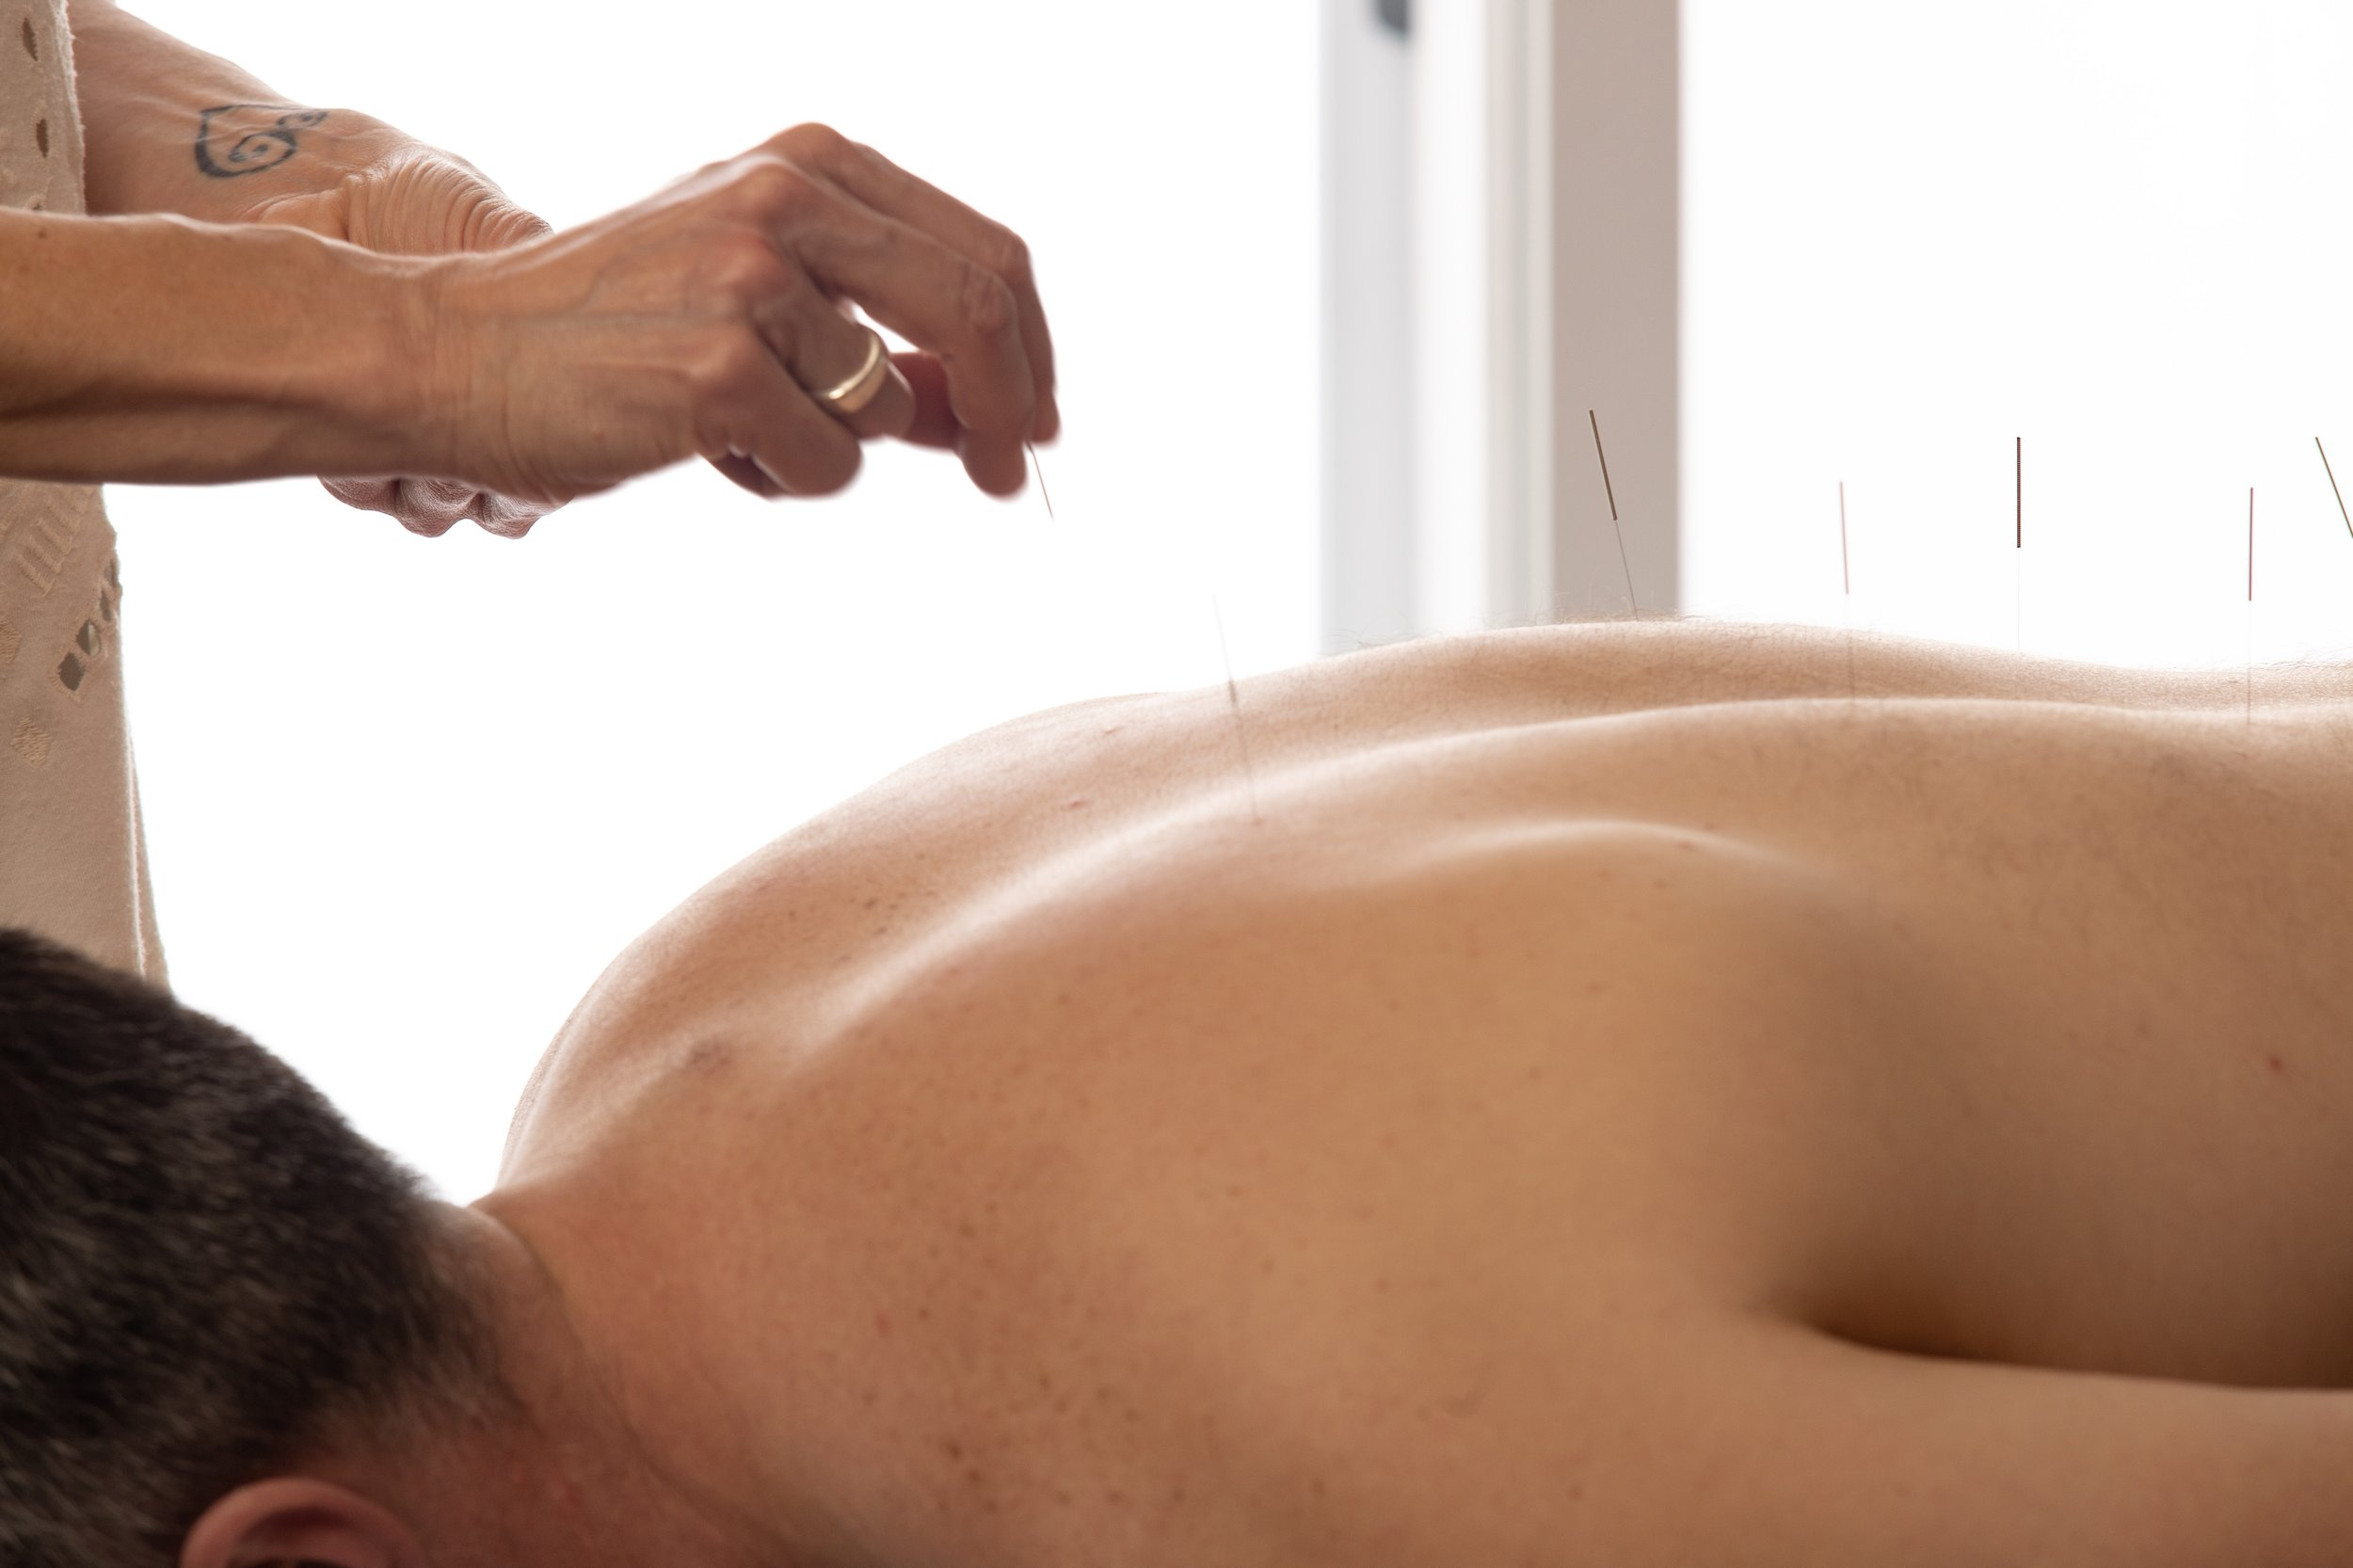 What Is Acupuncture? - Acupuncture is one of the oldest healing arts in the world, ranging back to over 3,000 years. It's theory is based on the flow of energy in the body called qi (chee). When qi flow is disrupted due to trauma, poor diet, medications, stress or other conditions, pain or illness result. Acupuncture focuses on correcting these imbalances of energy flow by inserting ultra-thin, hair like needles under the skin to stimulate specific points in the body. Stimulation of acupuncture points allows even flow of qi, restoring the body's balance and relieving pain and other symptoms.Acupuncture's complex system of diagnostic methods take into consideration the person as a whole, not just isolated symptoms. The aim is to treat the underlying cause of the symptom and thus improving quality of life.Acupuncture works with the body, harmonizing and balancing energy. It improves circulation, releases endorphins, and allows the body to heal itself more quickly and more completely. Best of all, acupuncture is safe and side-effect free, making it a wonderful medical option especially during pregnancy.